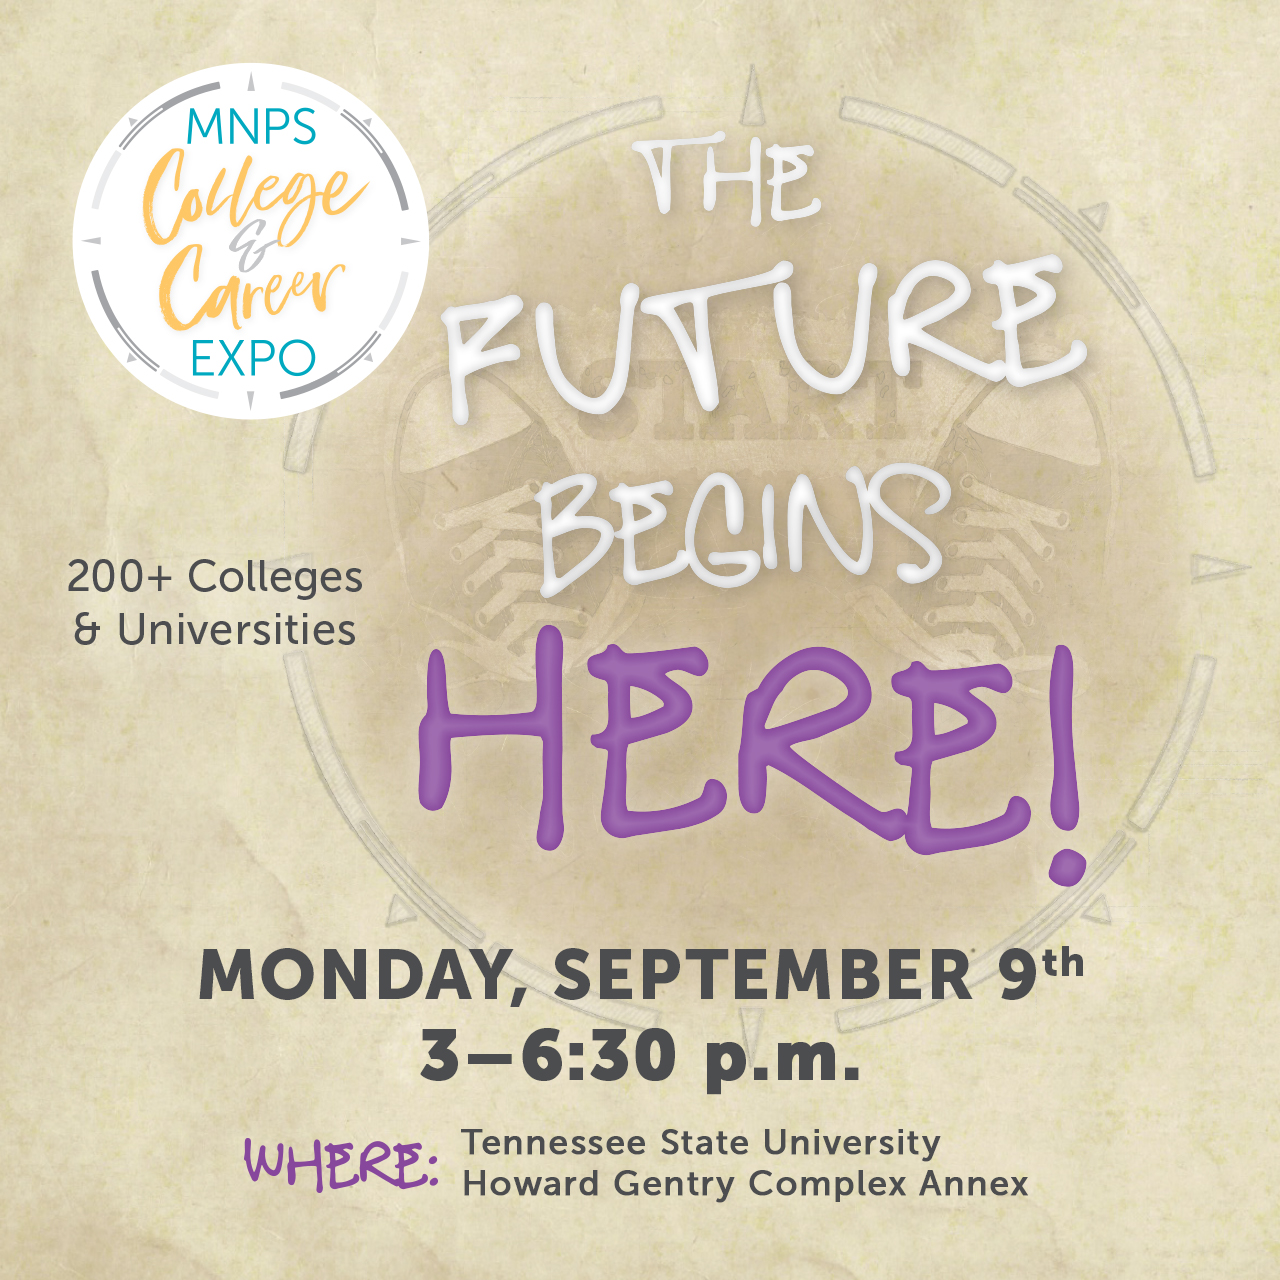 Save the Date for the College and Career Expo Sept. 9!